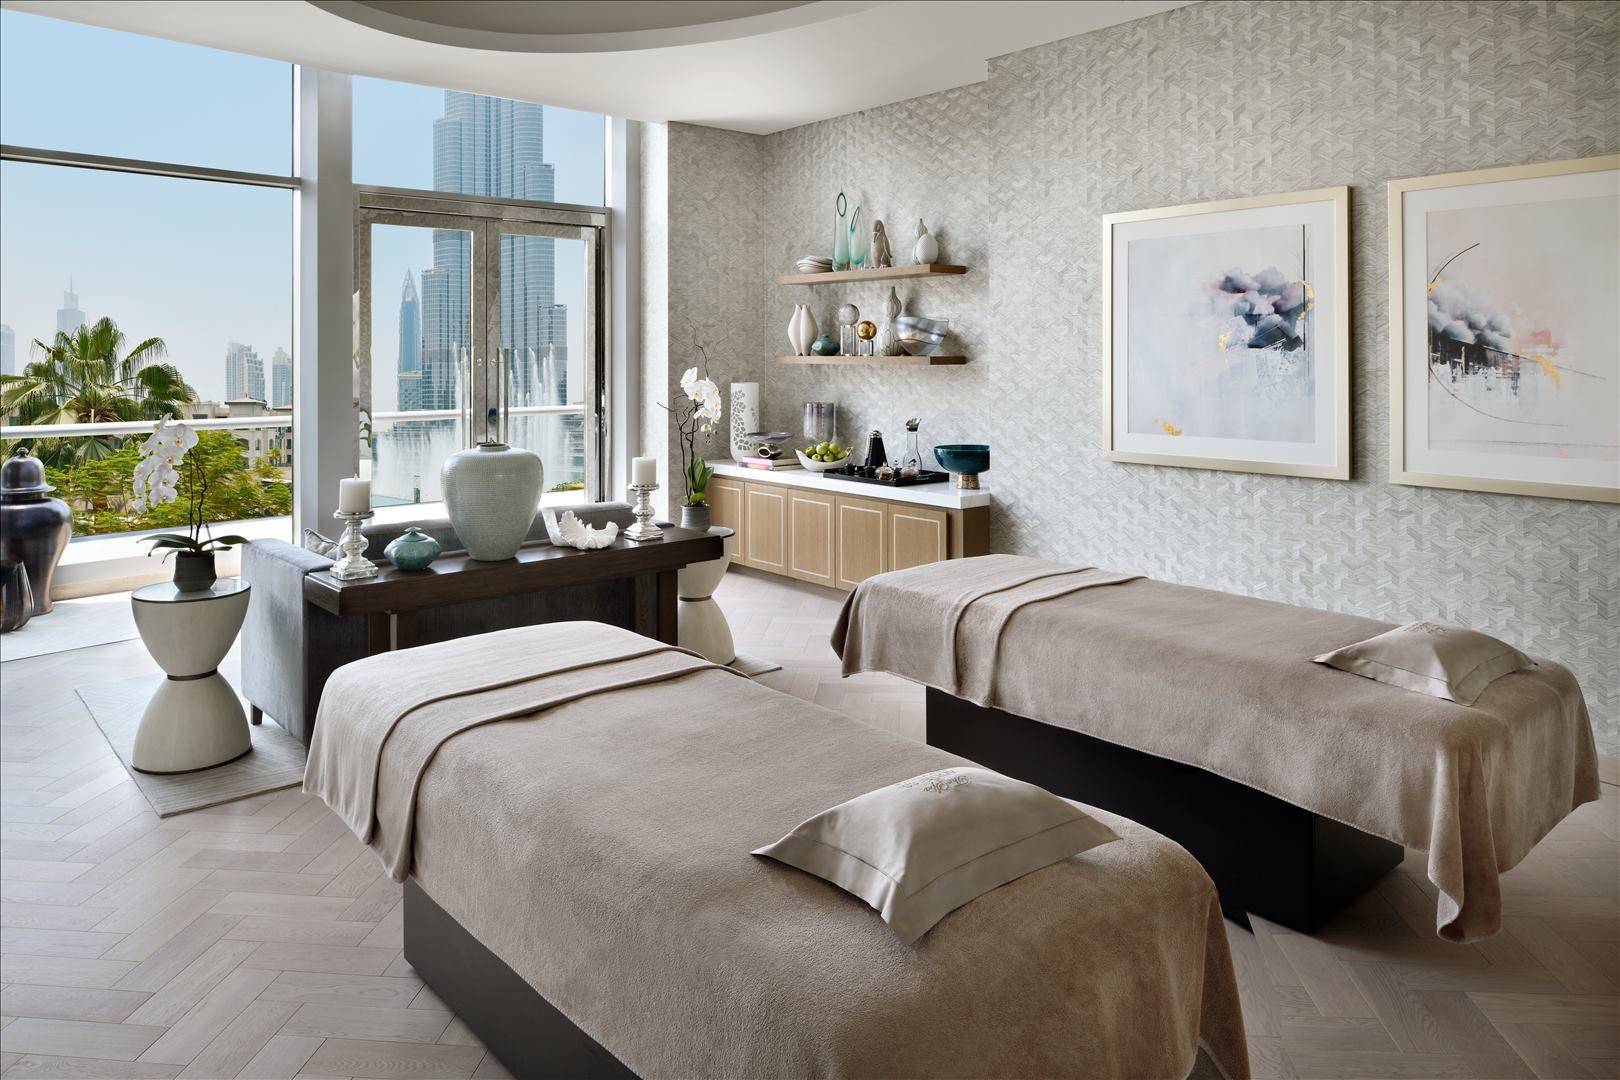 Festive Spa Treatments at The Spa at Address Downtown